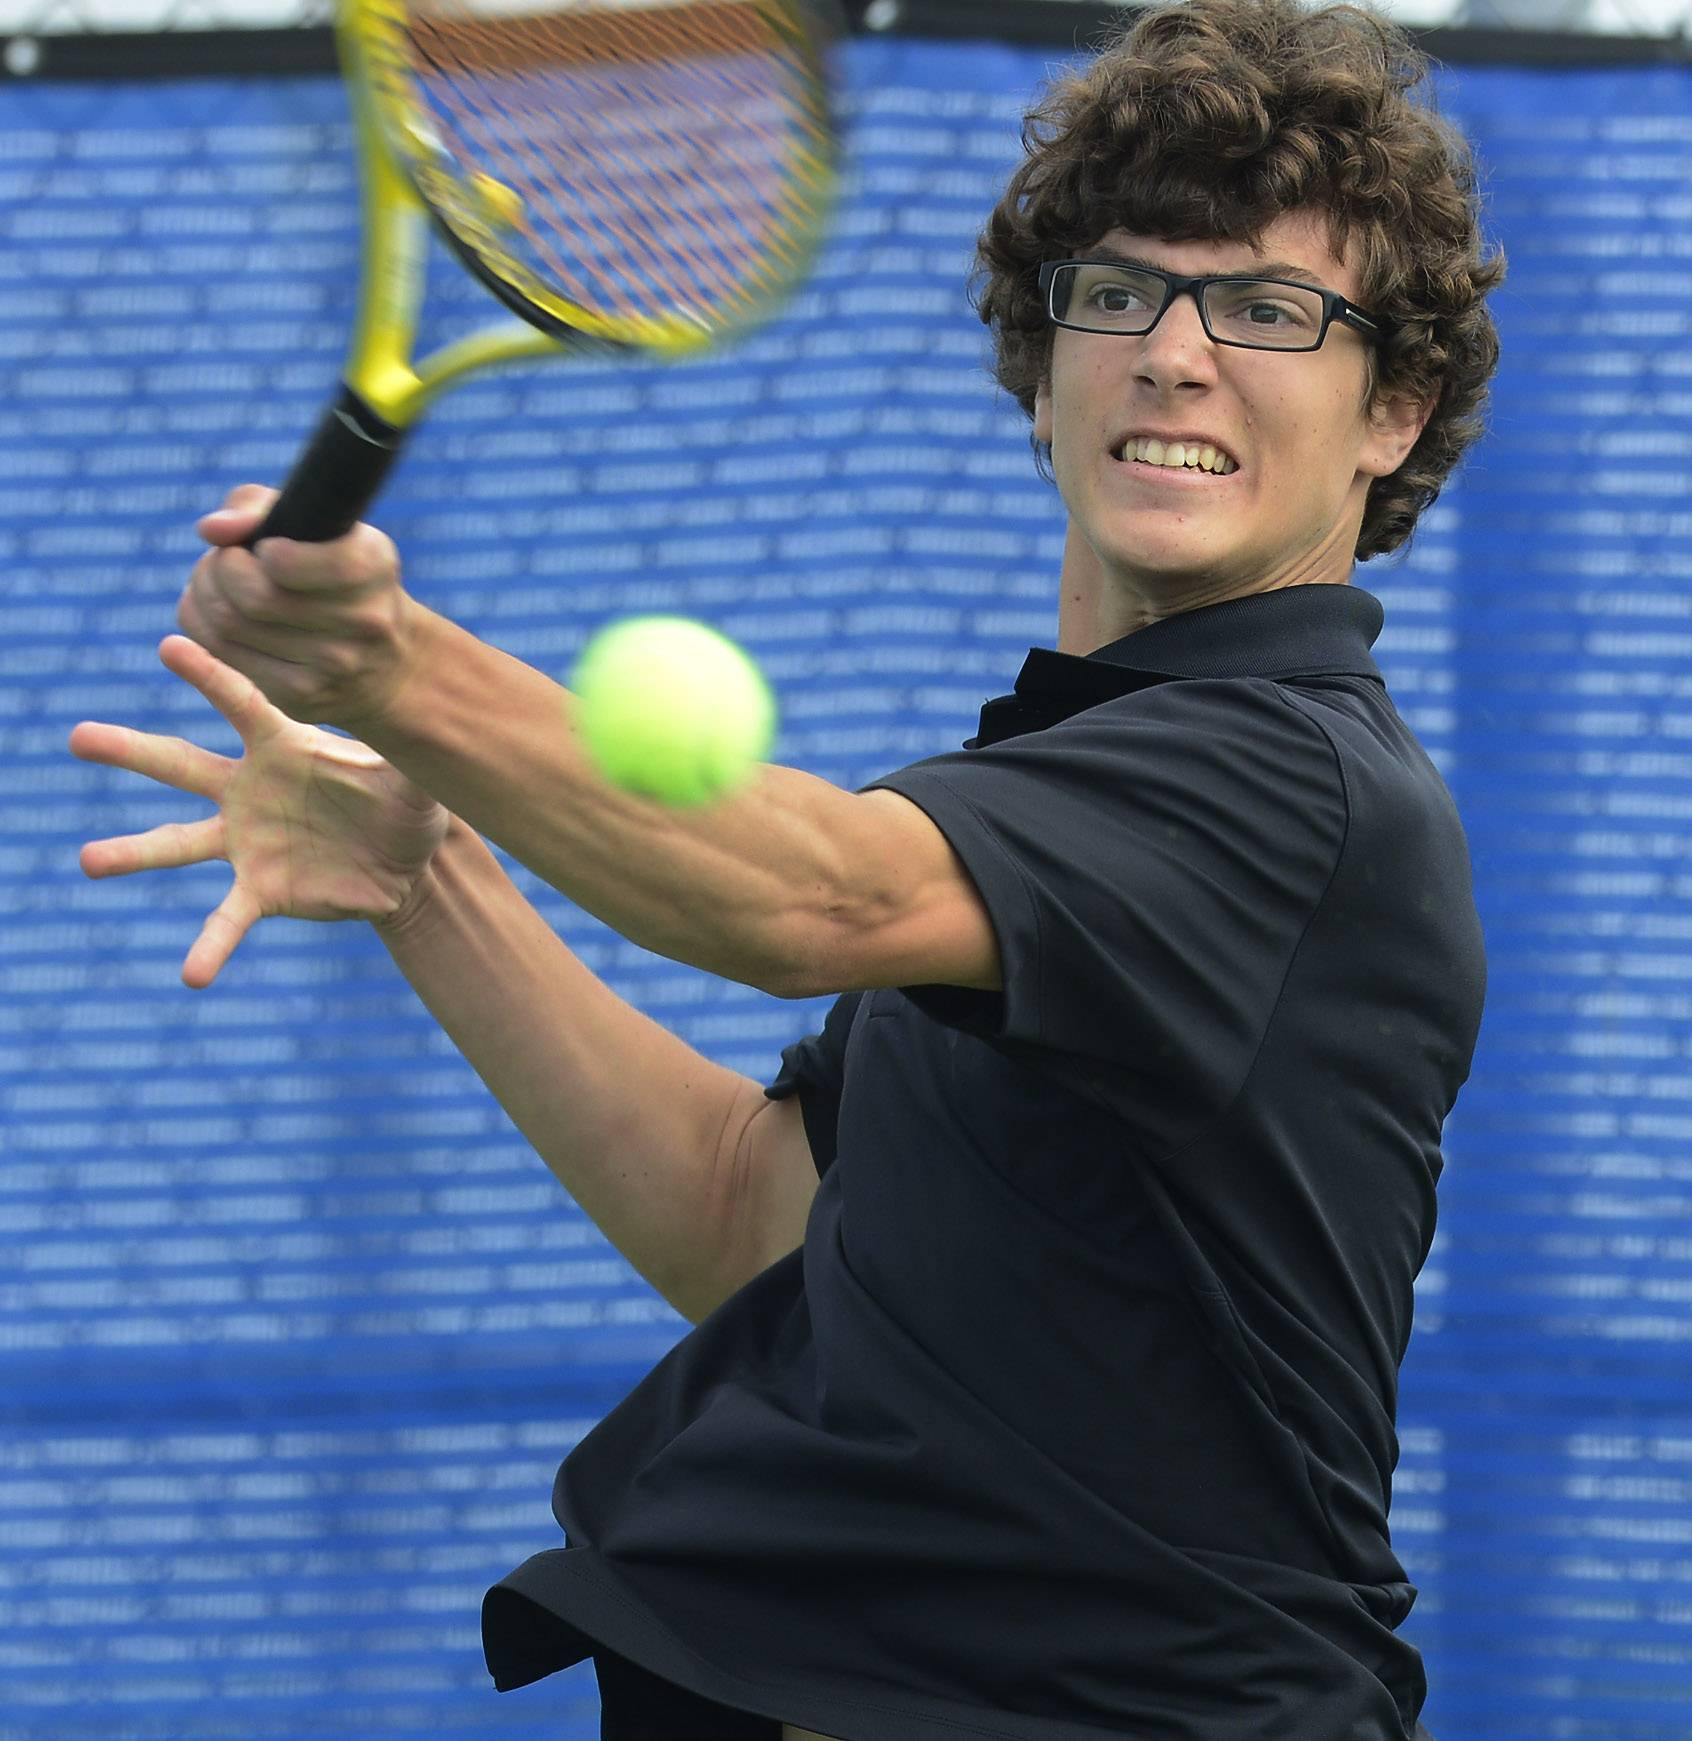 Elisha Hougland of Hampshire returns the ball during Day 1 of the boys tennis state tournament at Hoffman Estates High School on Thursday.